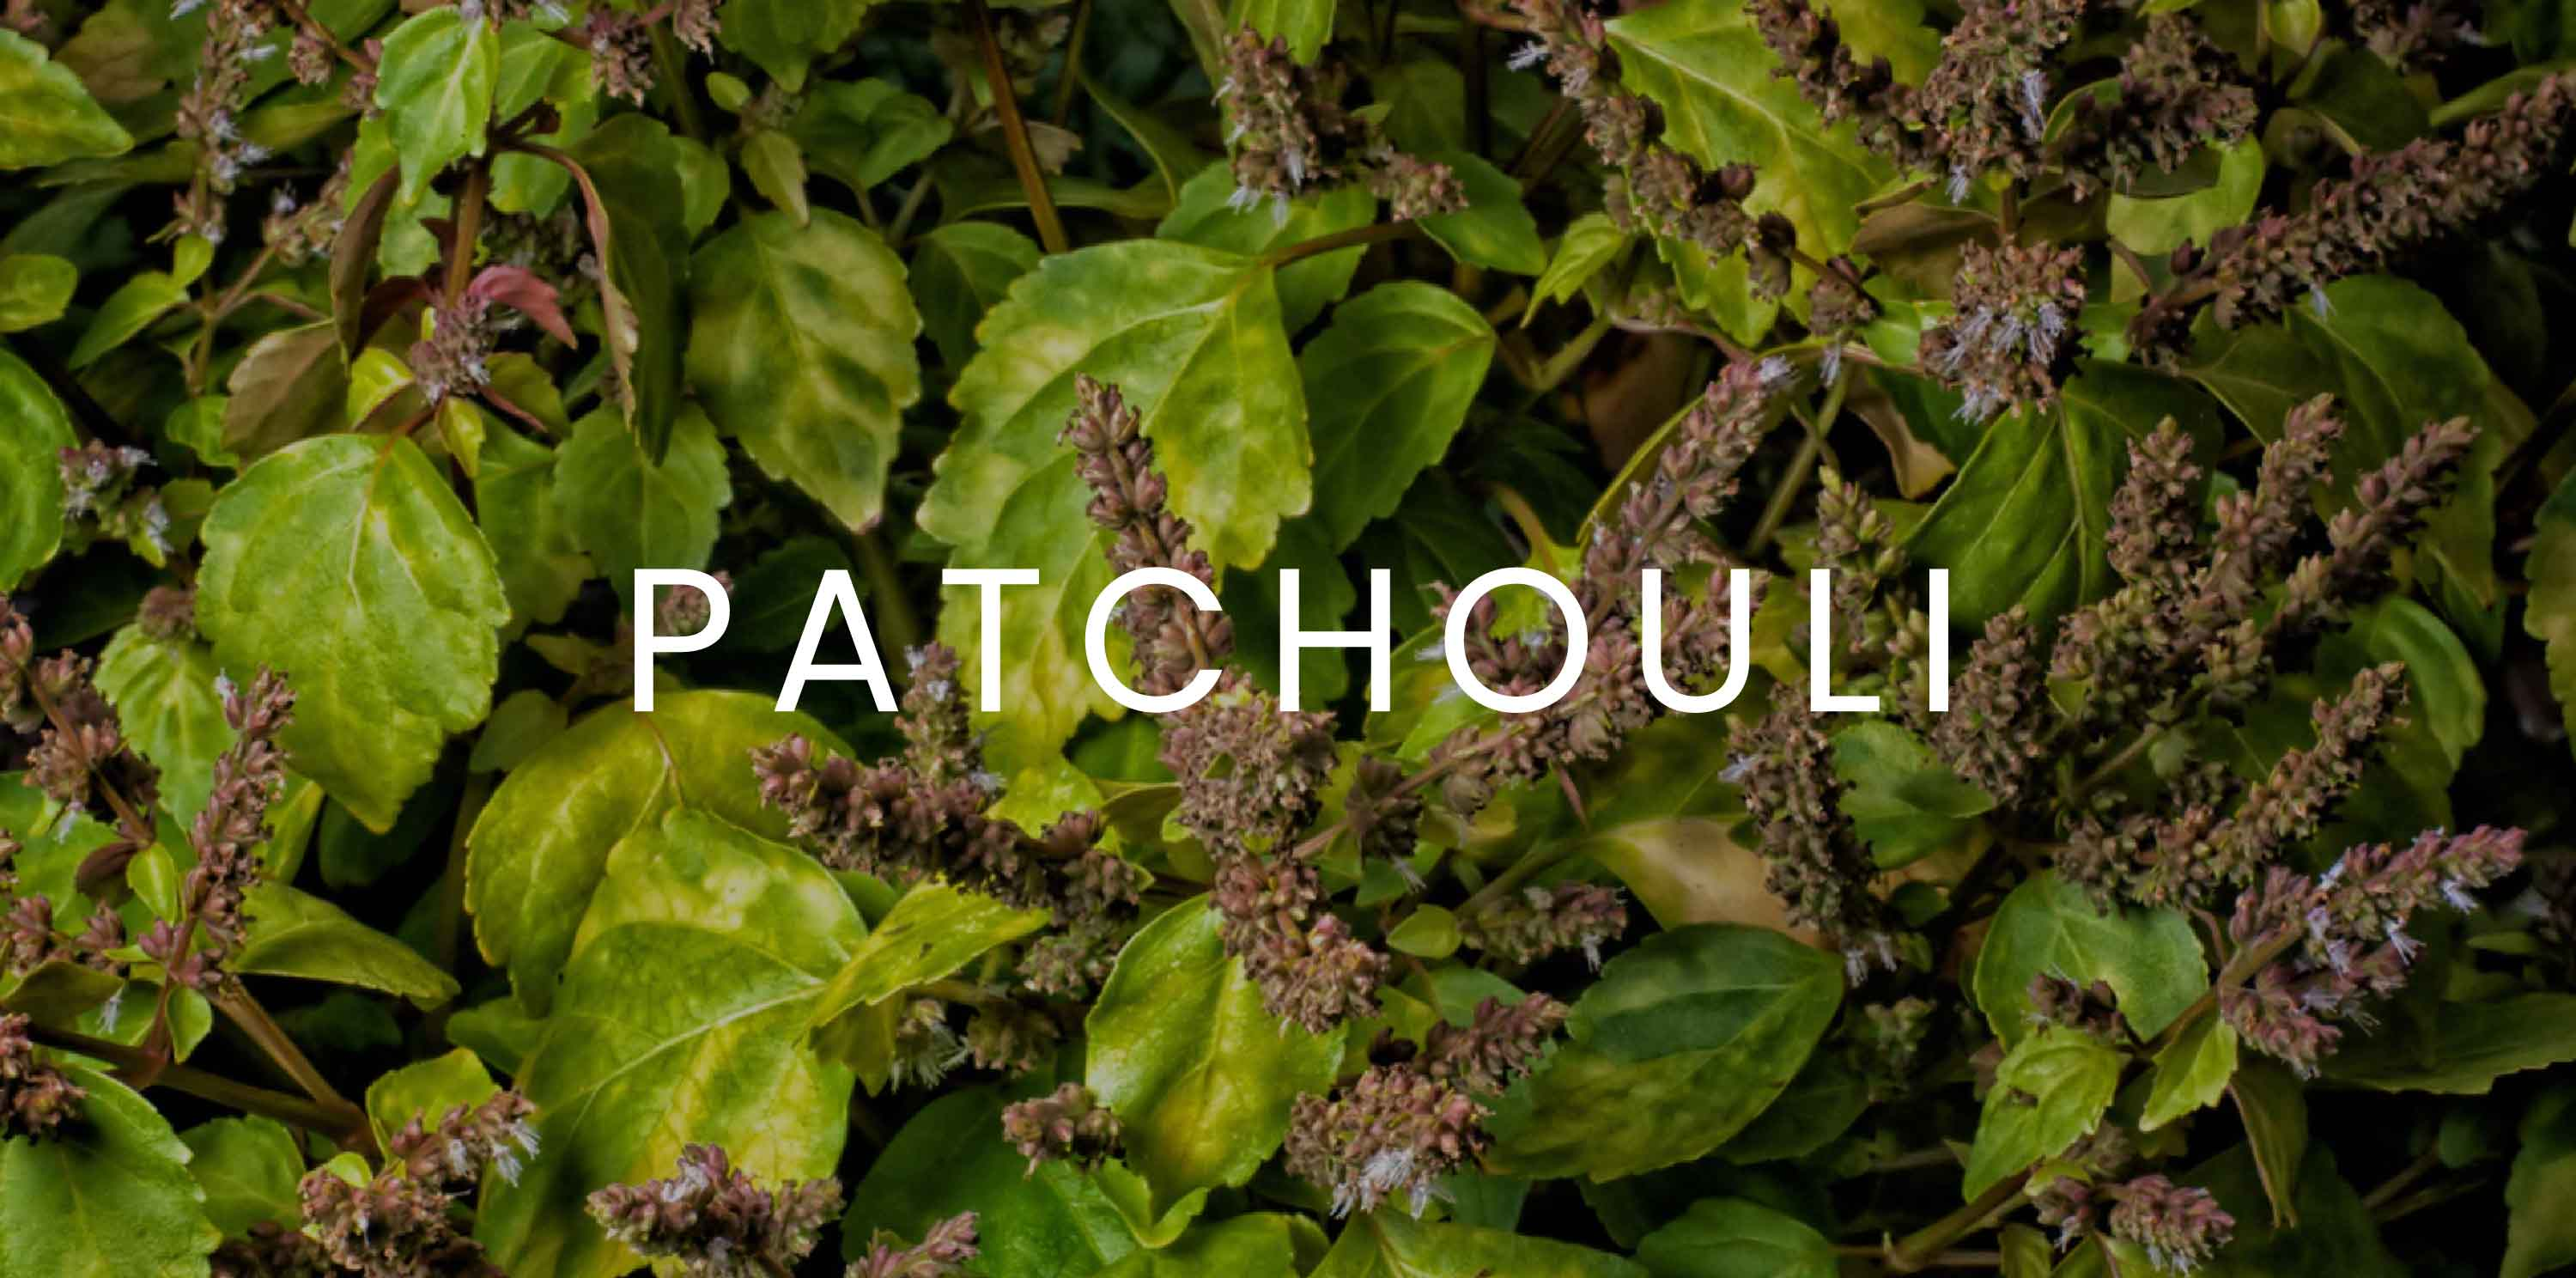 Shop patchouli